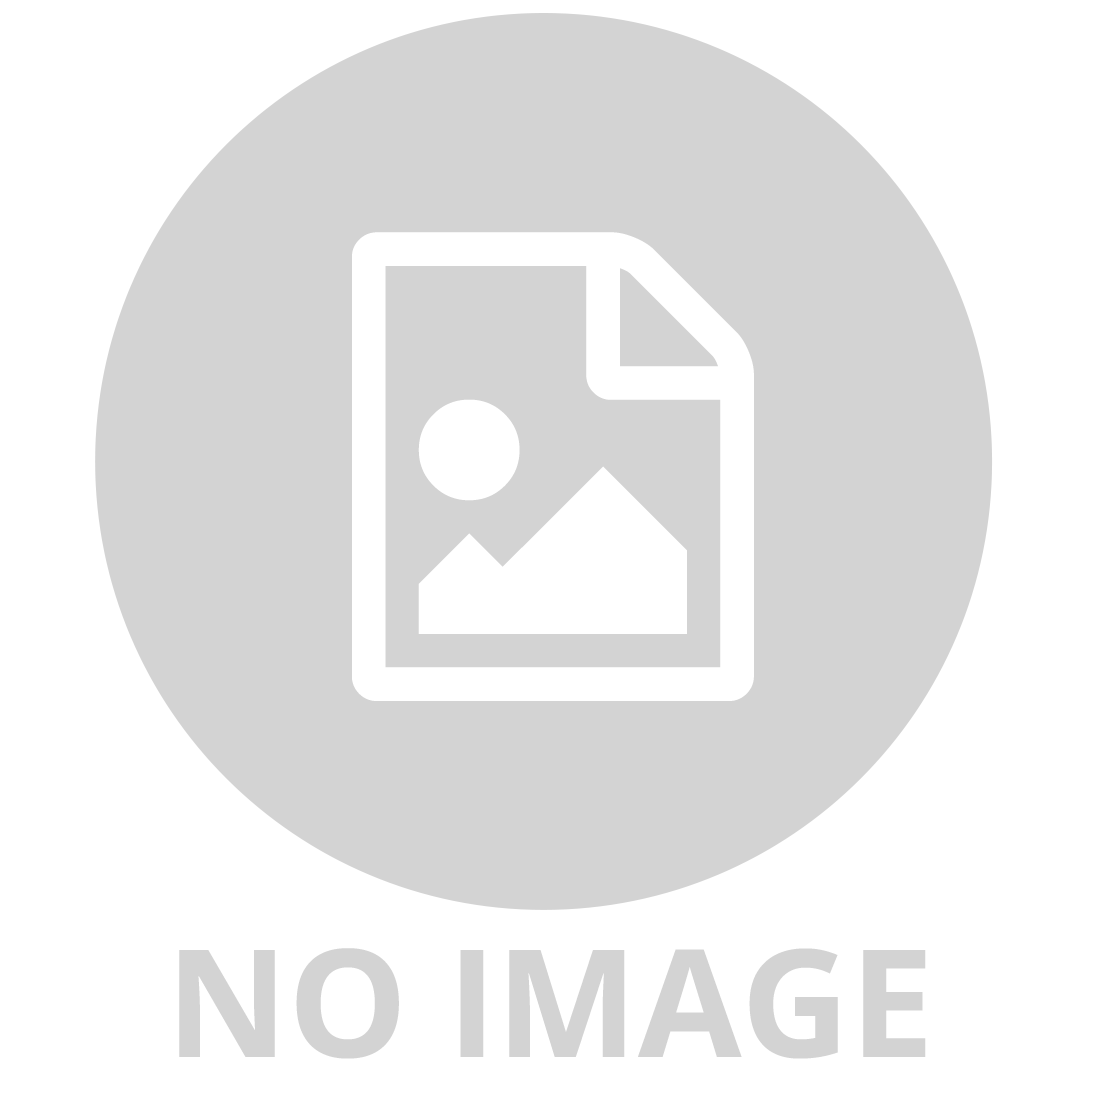 MOTOR MAX 1:24 TIMELESS LEGENDS DIE CAST COLLECTION